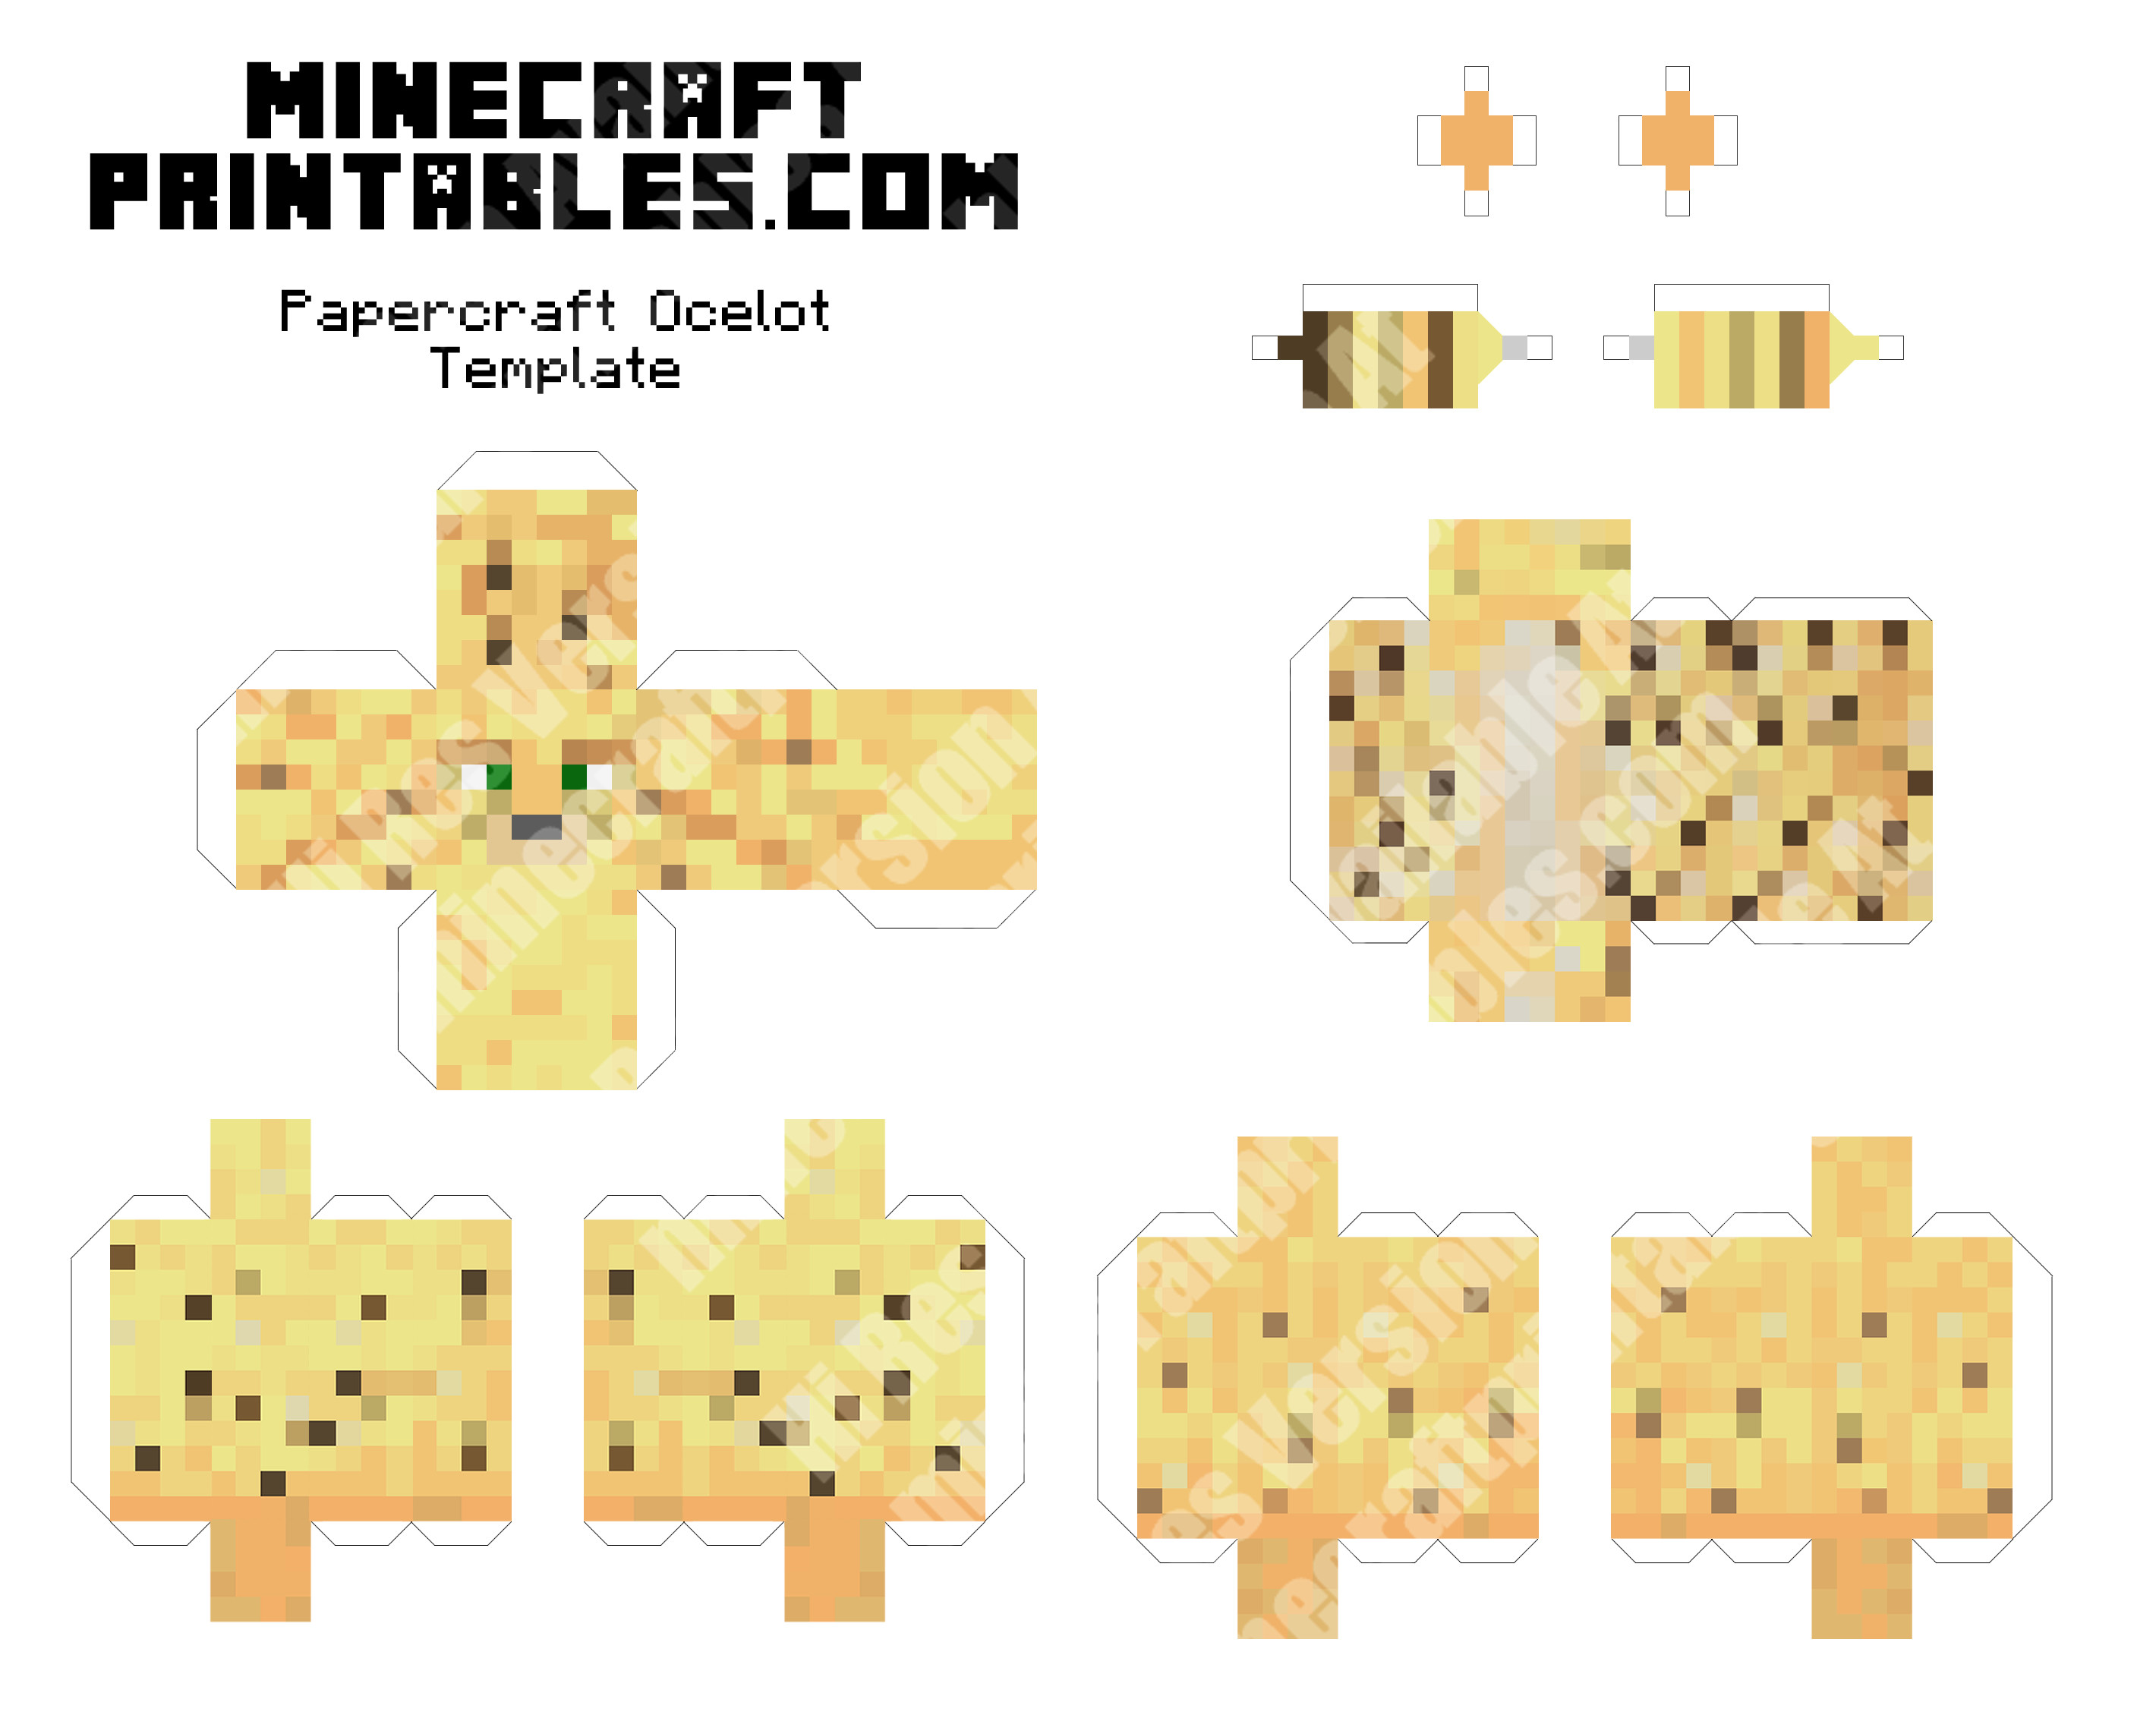 This is a graphic of Sassy Minecraft Papercraft Printable